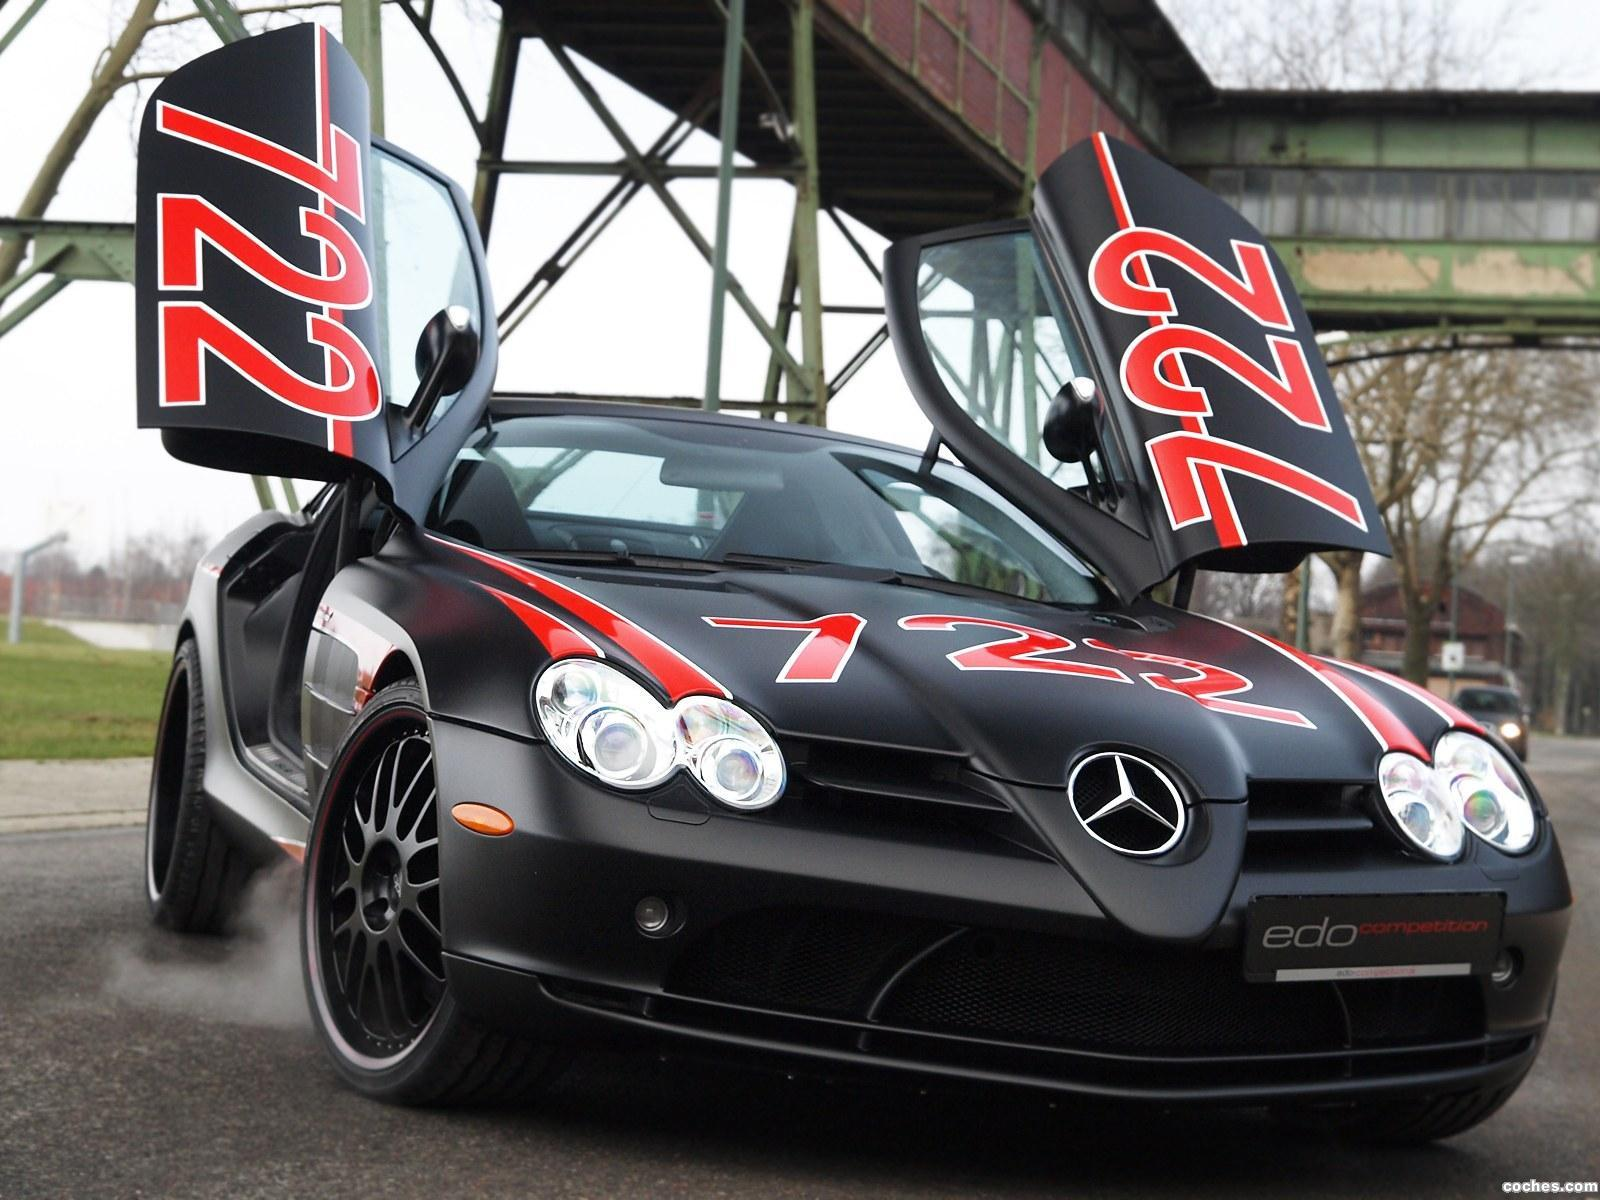 Foto 0 de Mercedes Edo SLR McLaren Black Arrow C199 2011